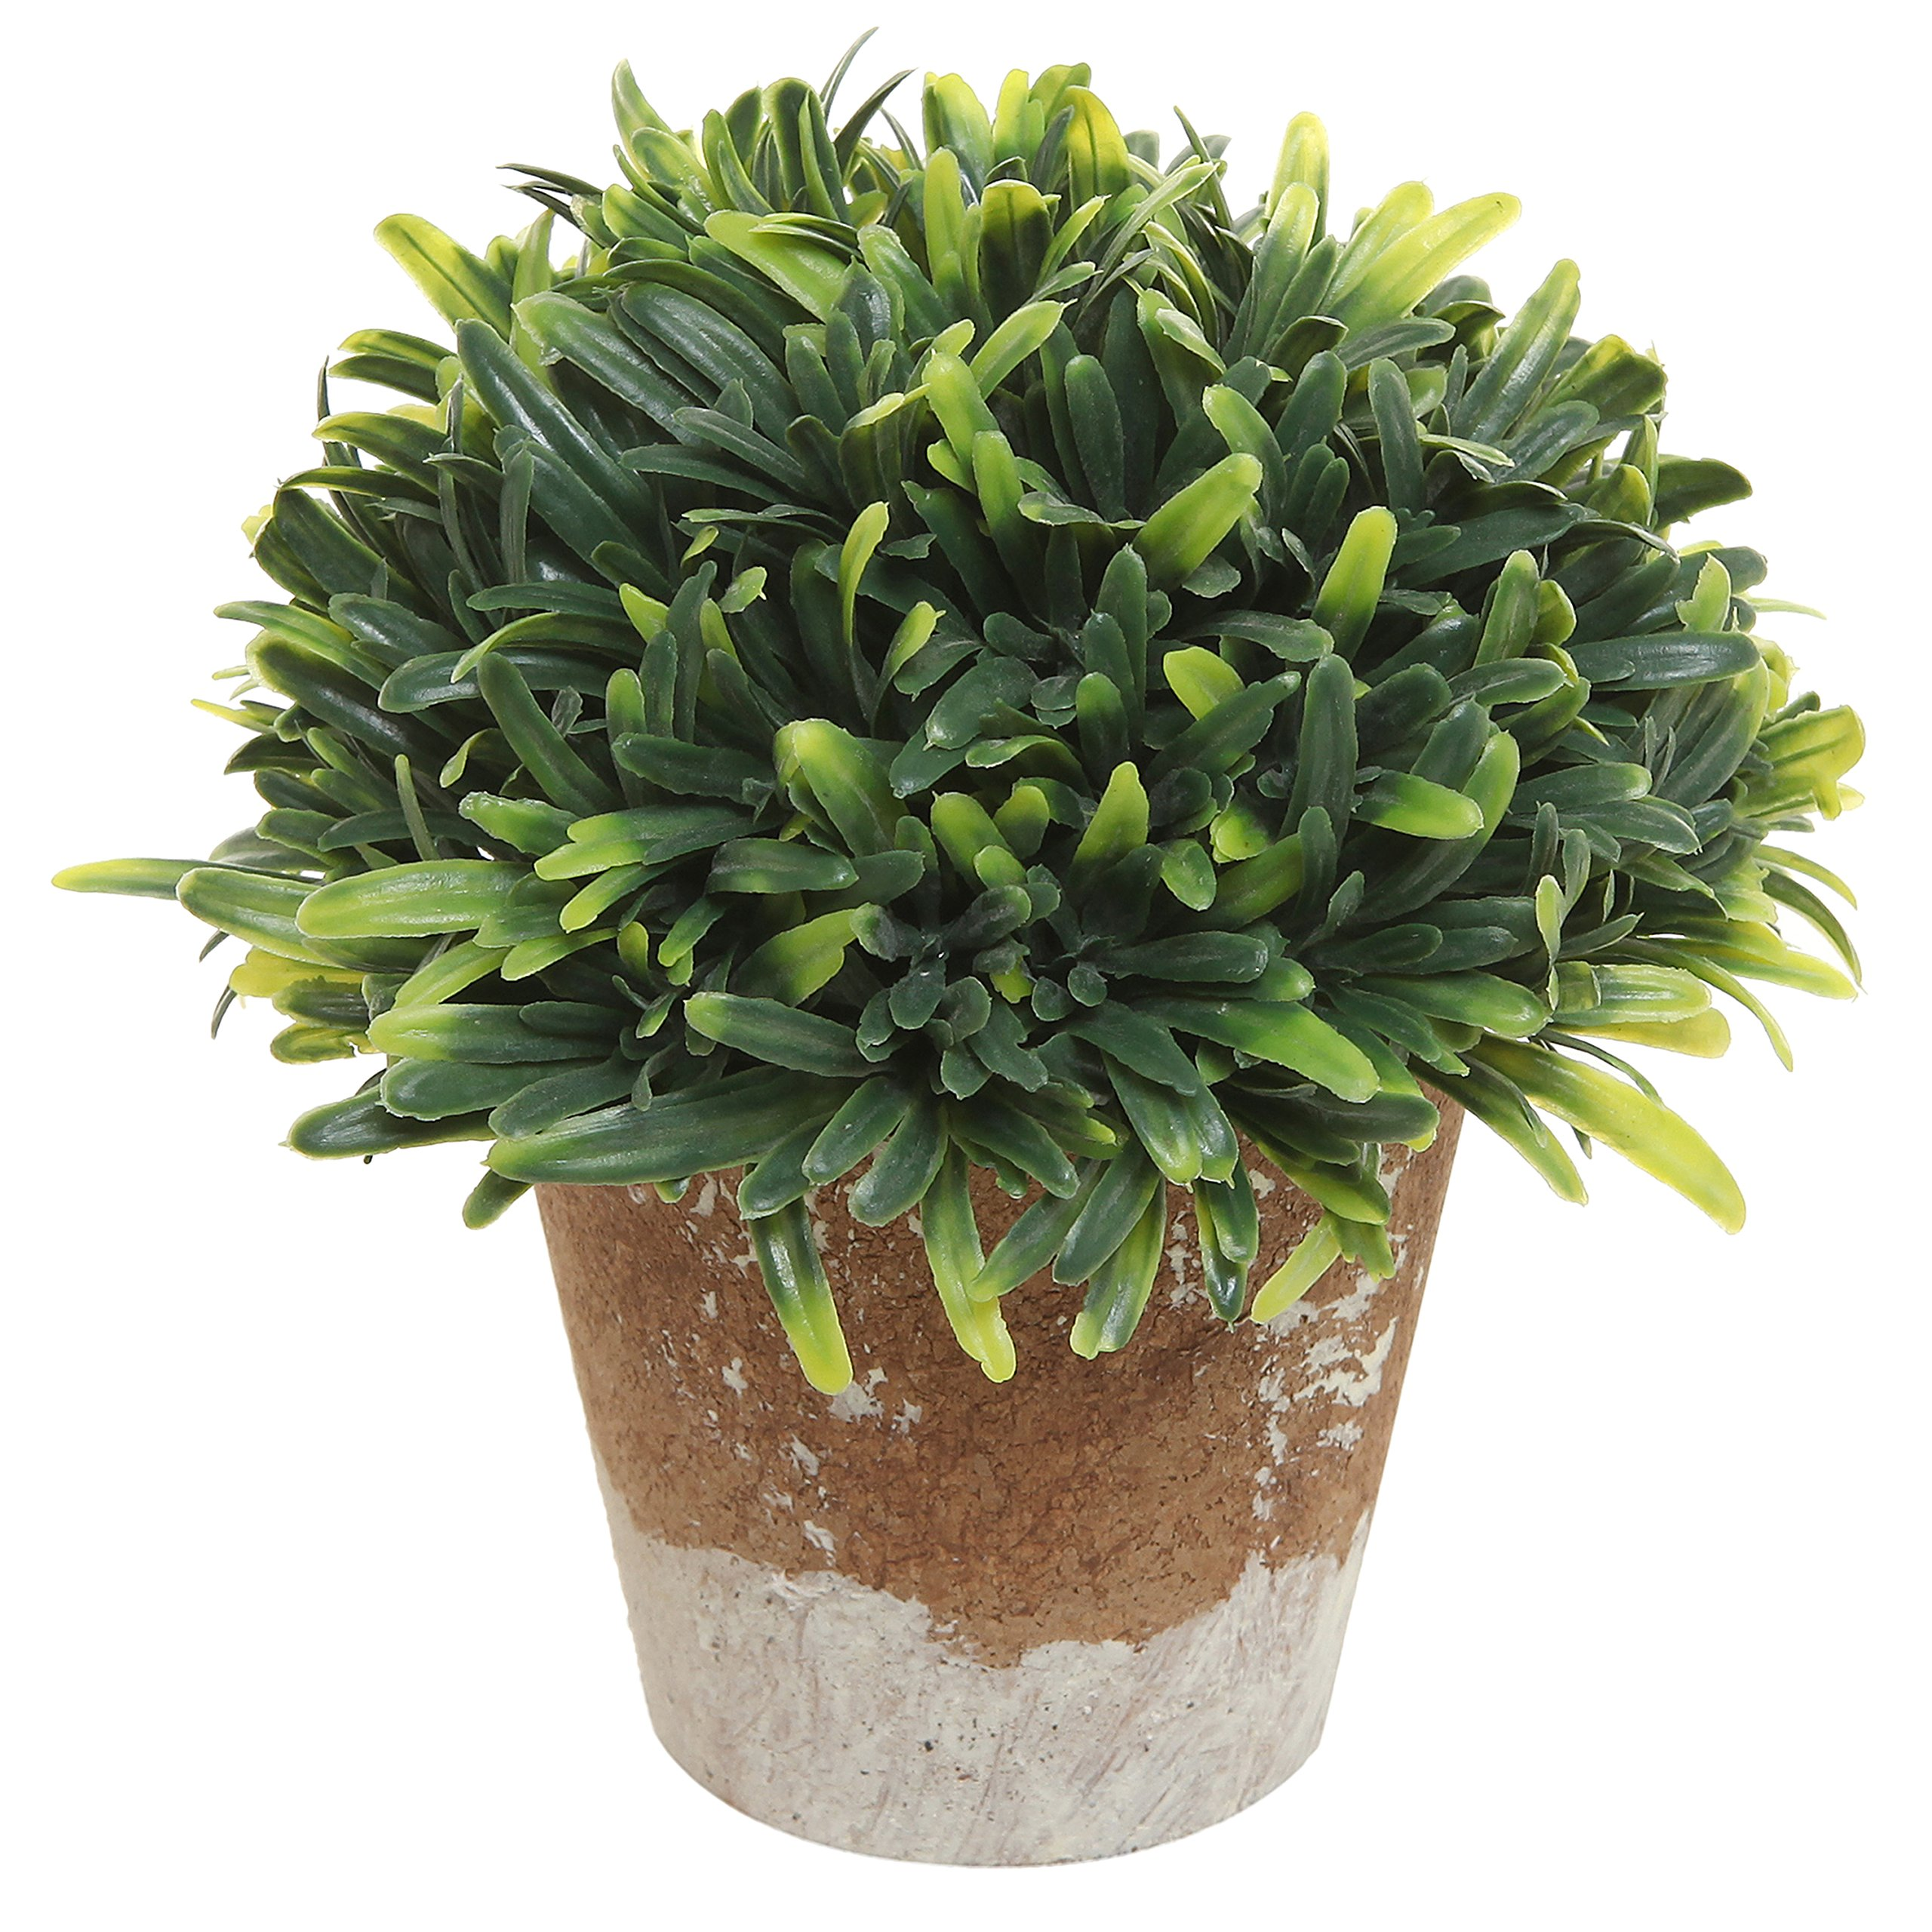 Decorative Green Plastic Artificial Plant w/Rustic Style Brown Ceramic Planter Pot Container - MyGift